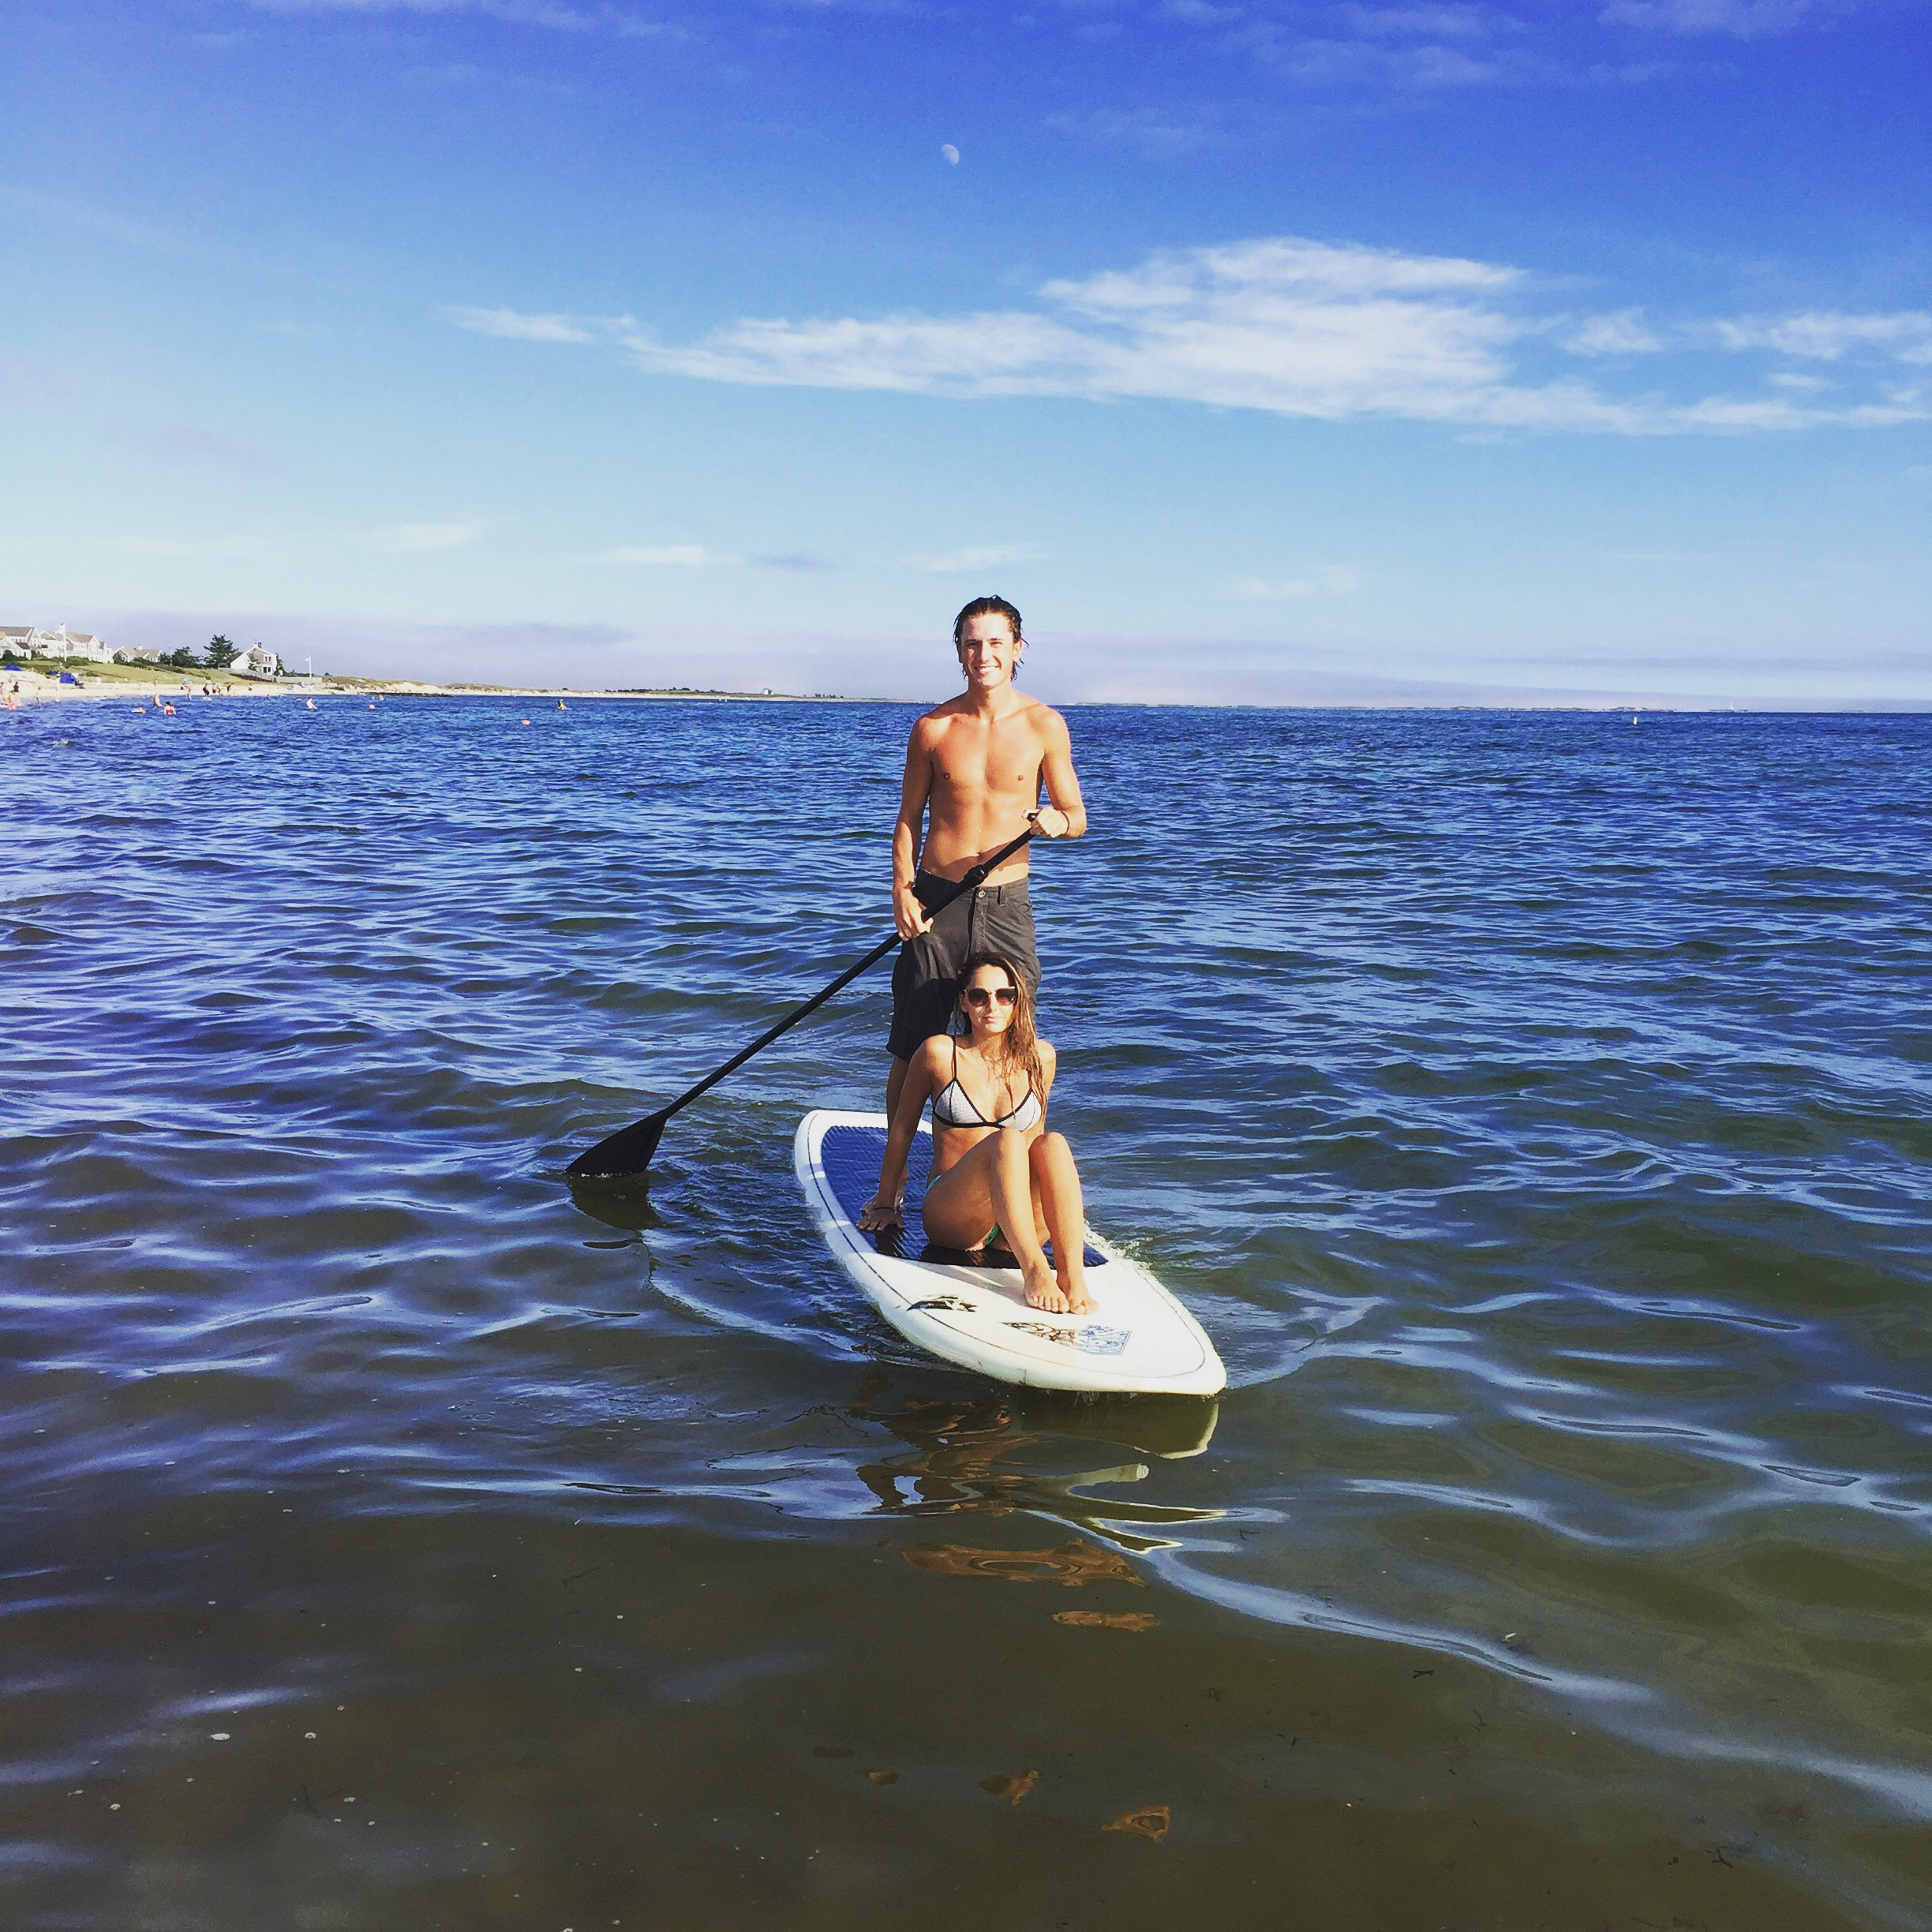 sup-rentals-stand-up-paddle